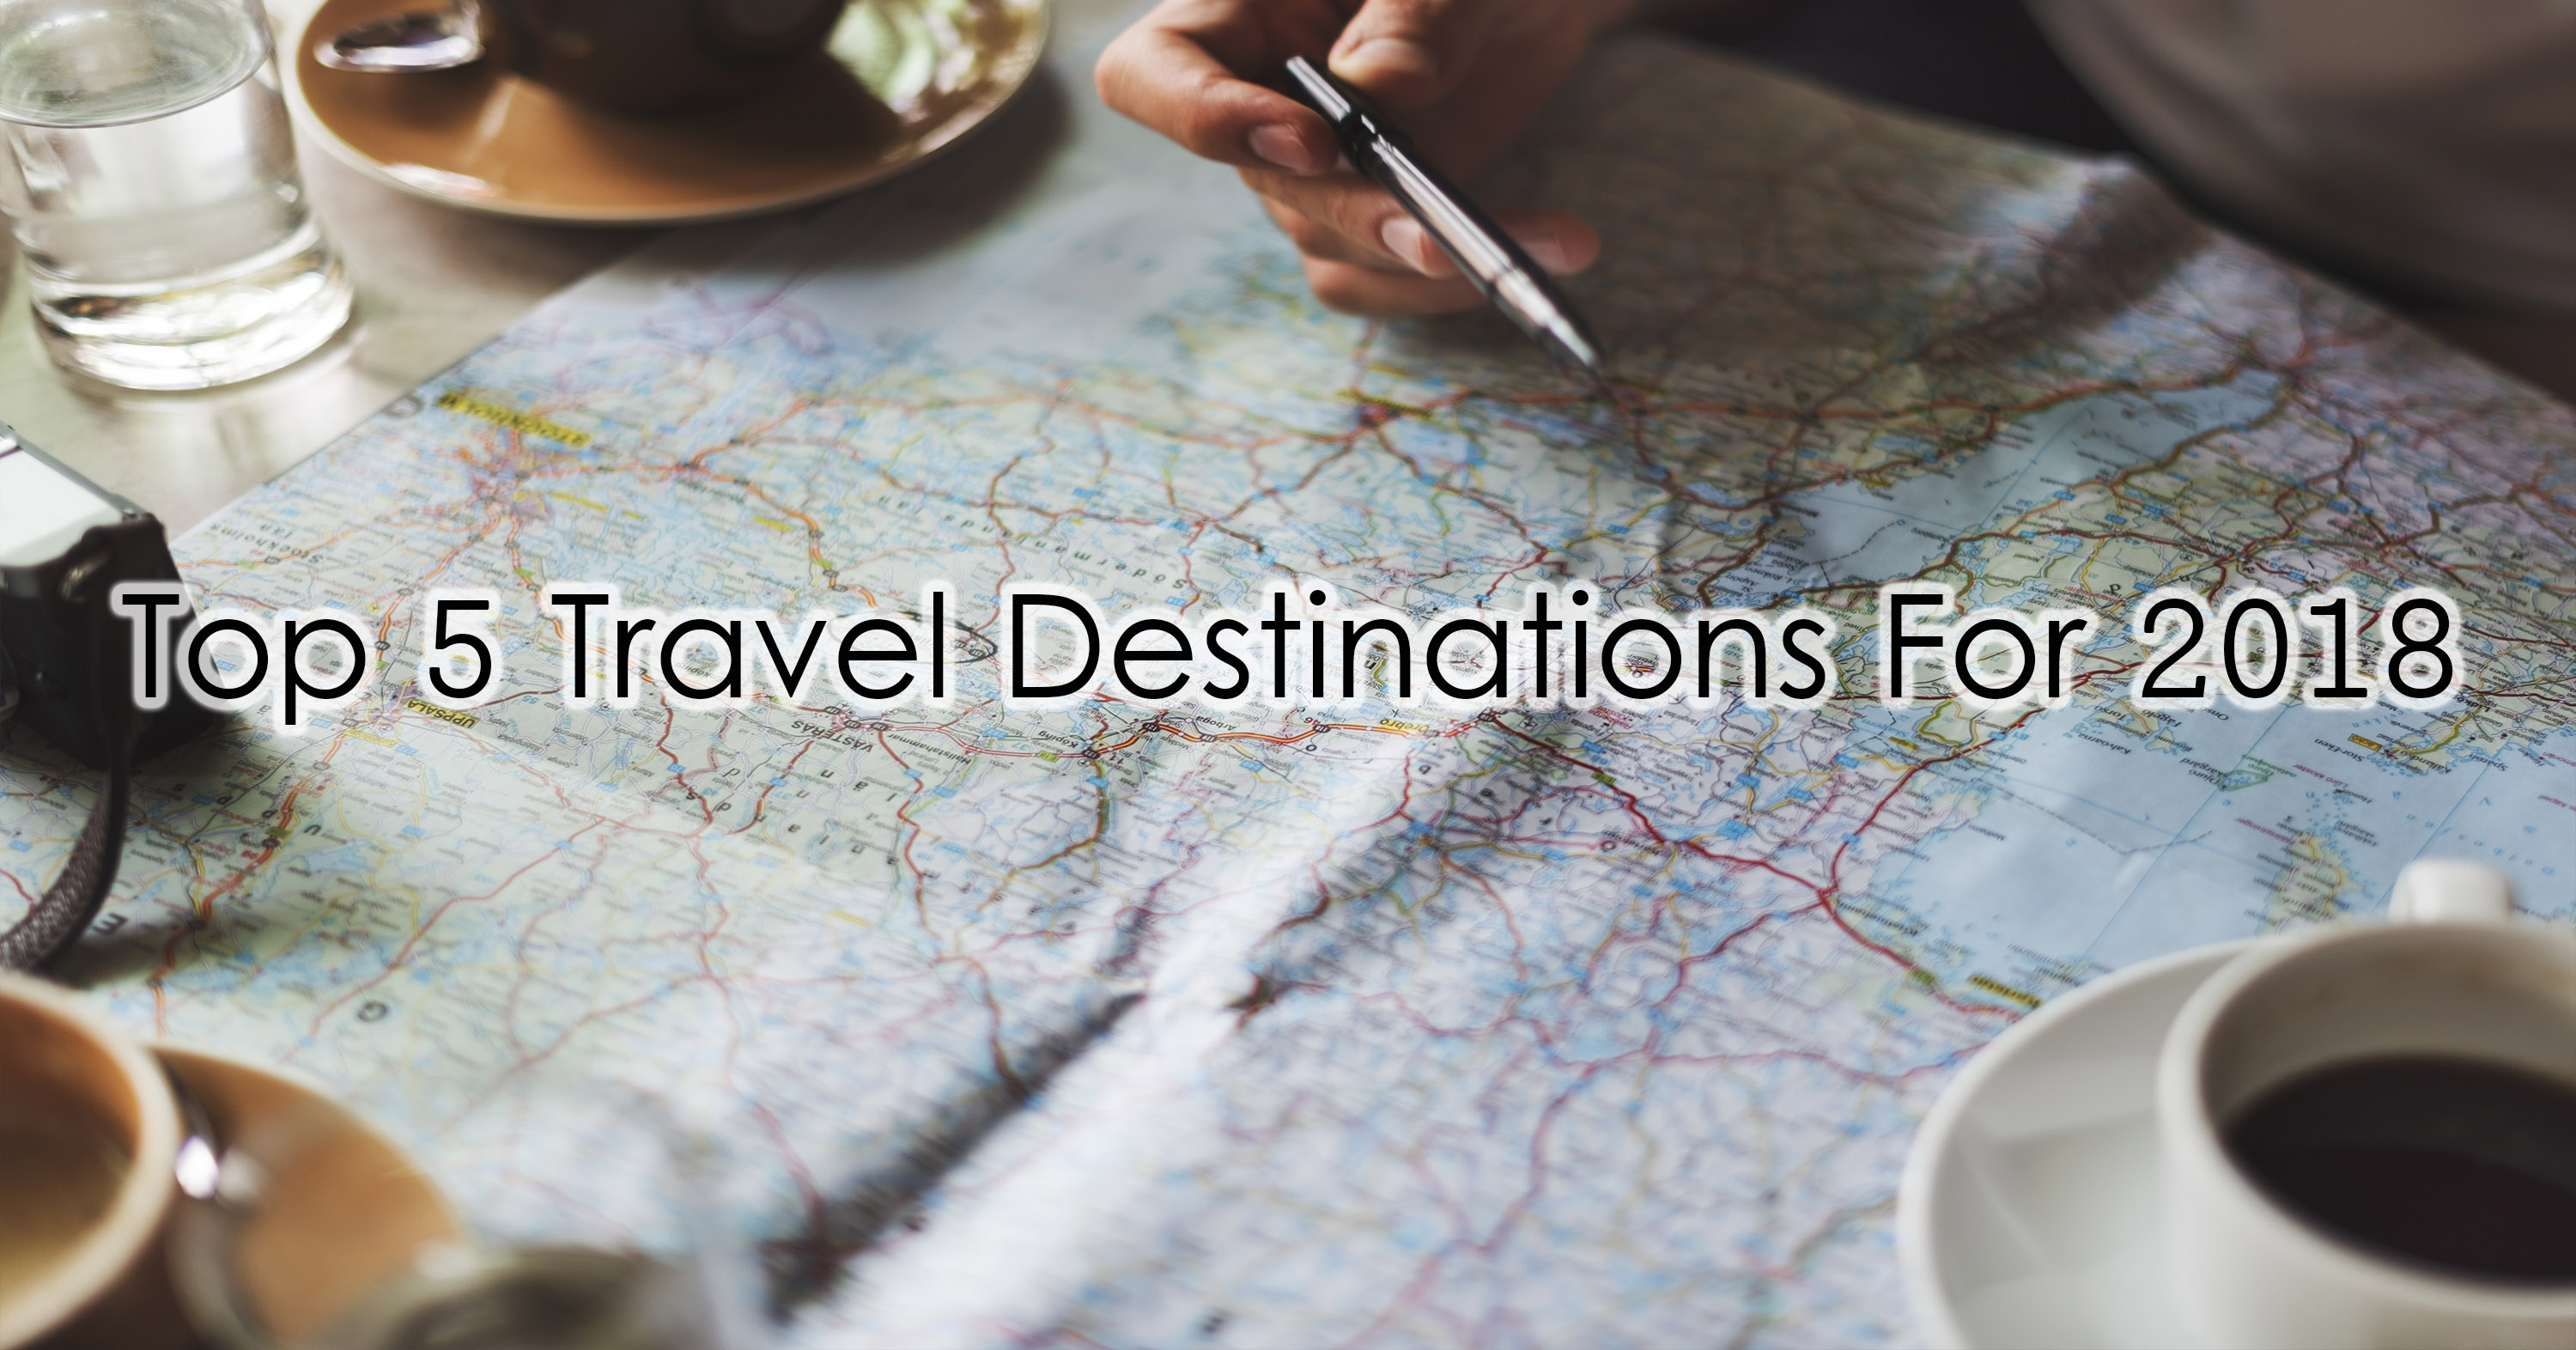 Top 5 Travel Destinations For 2018